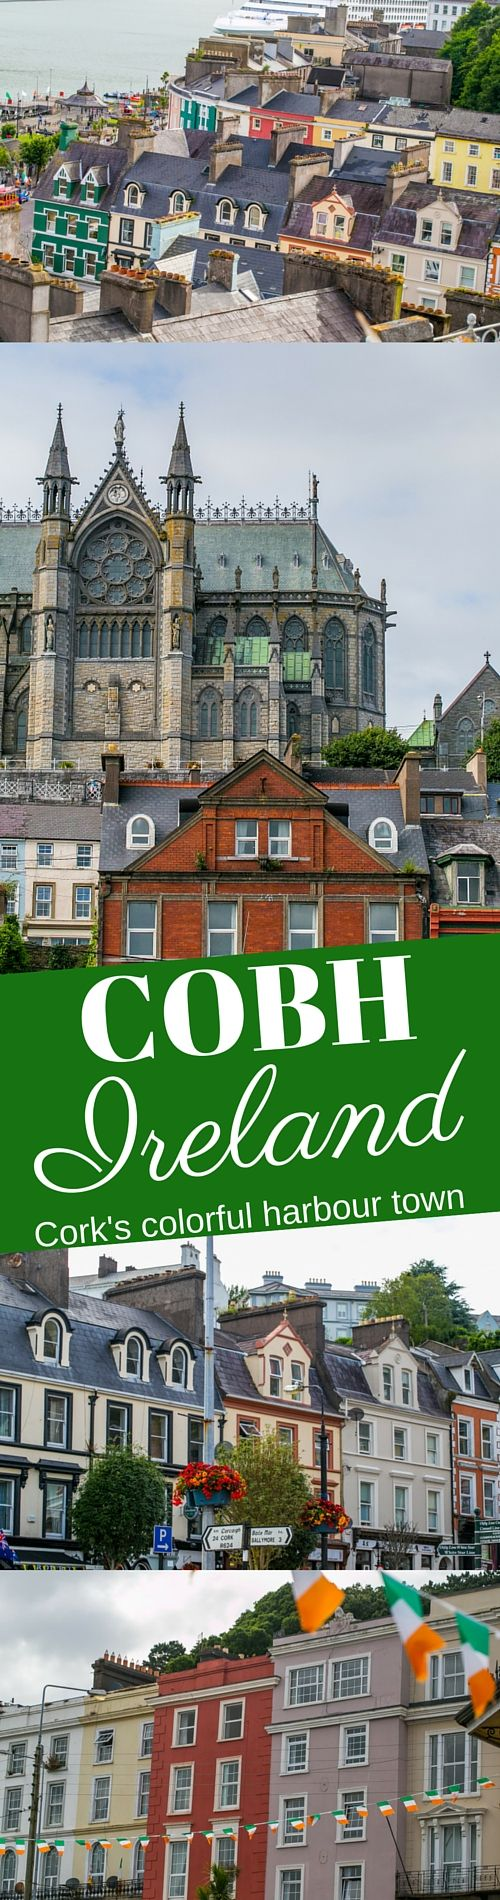 Cobh, County Cork, Ireland - I love this gorgeous seaside harbour town and all its bright colorful buildings!